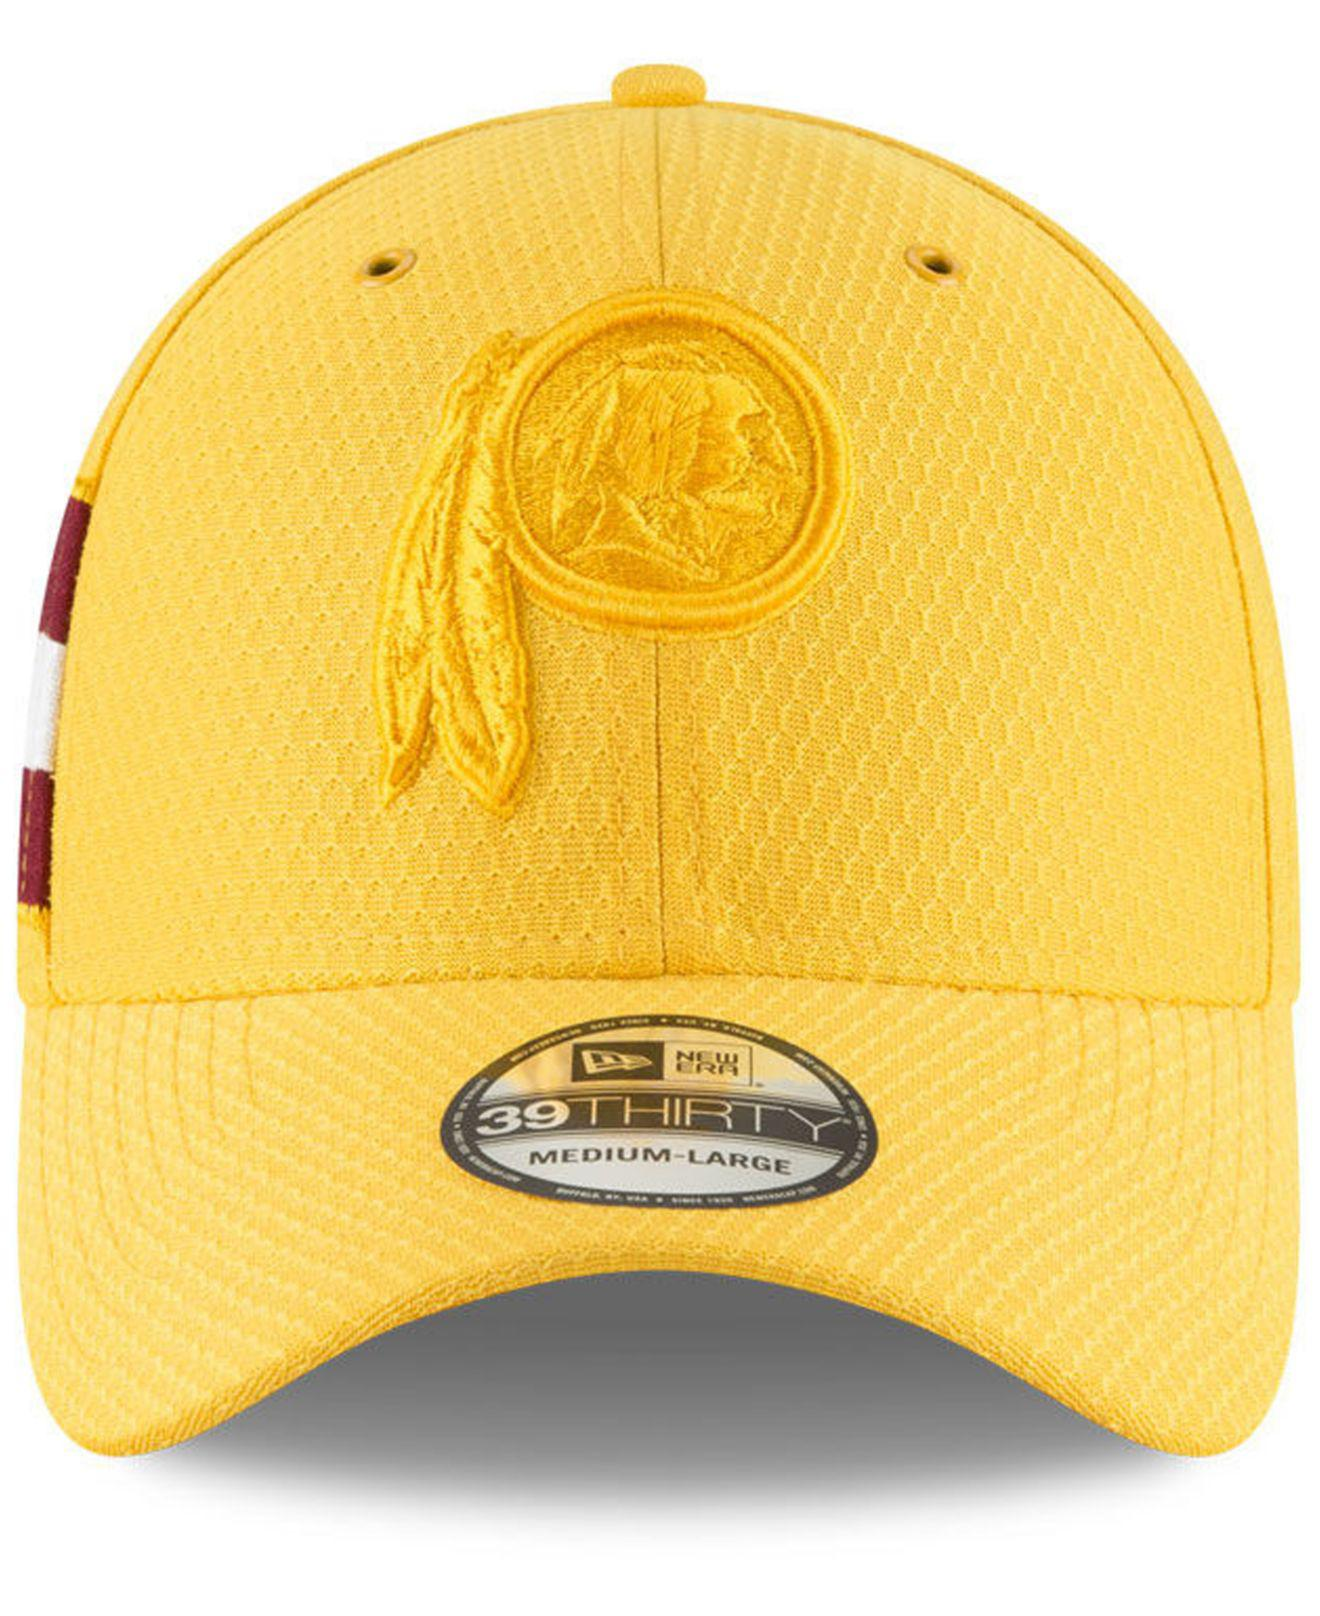 1d7b4234e0085 ... purchase lyst ktz washington redskins official color rush 39thirty  stretch fitted cap in metallic for men